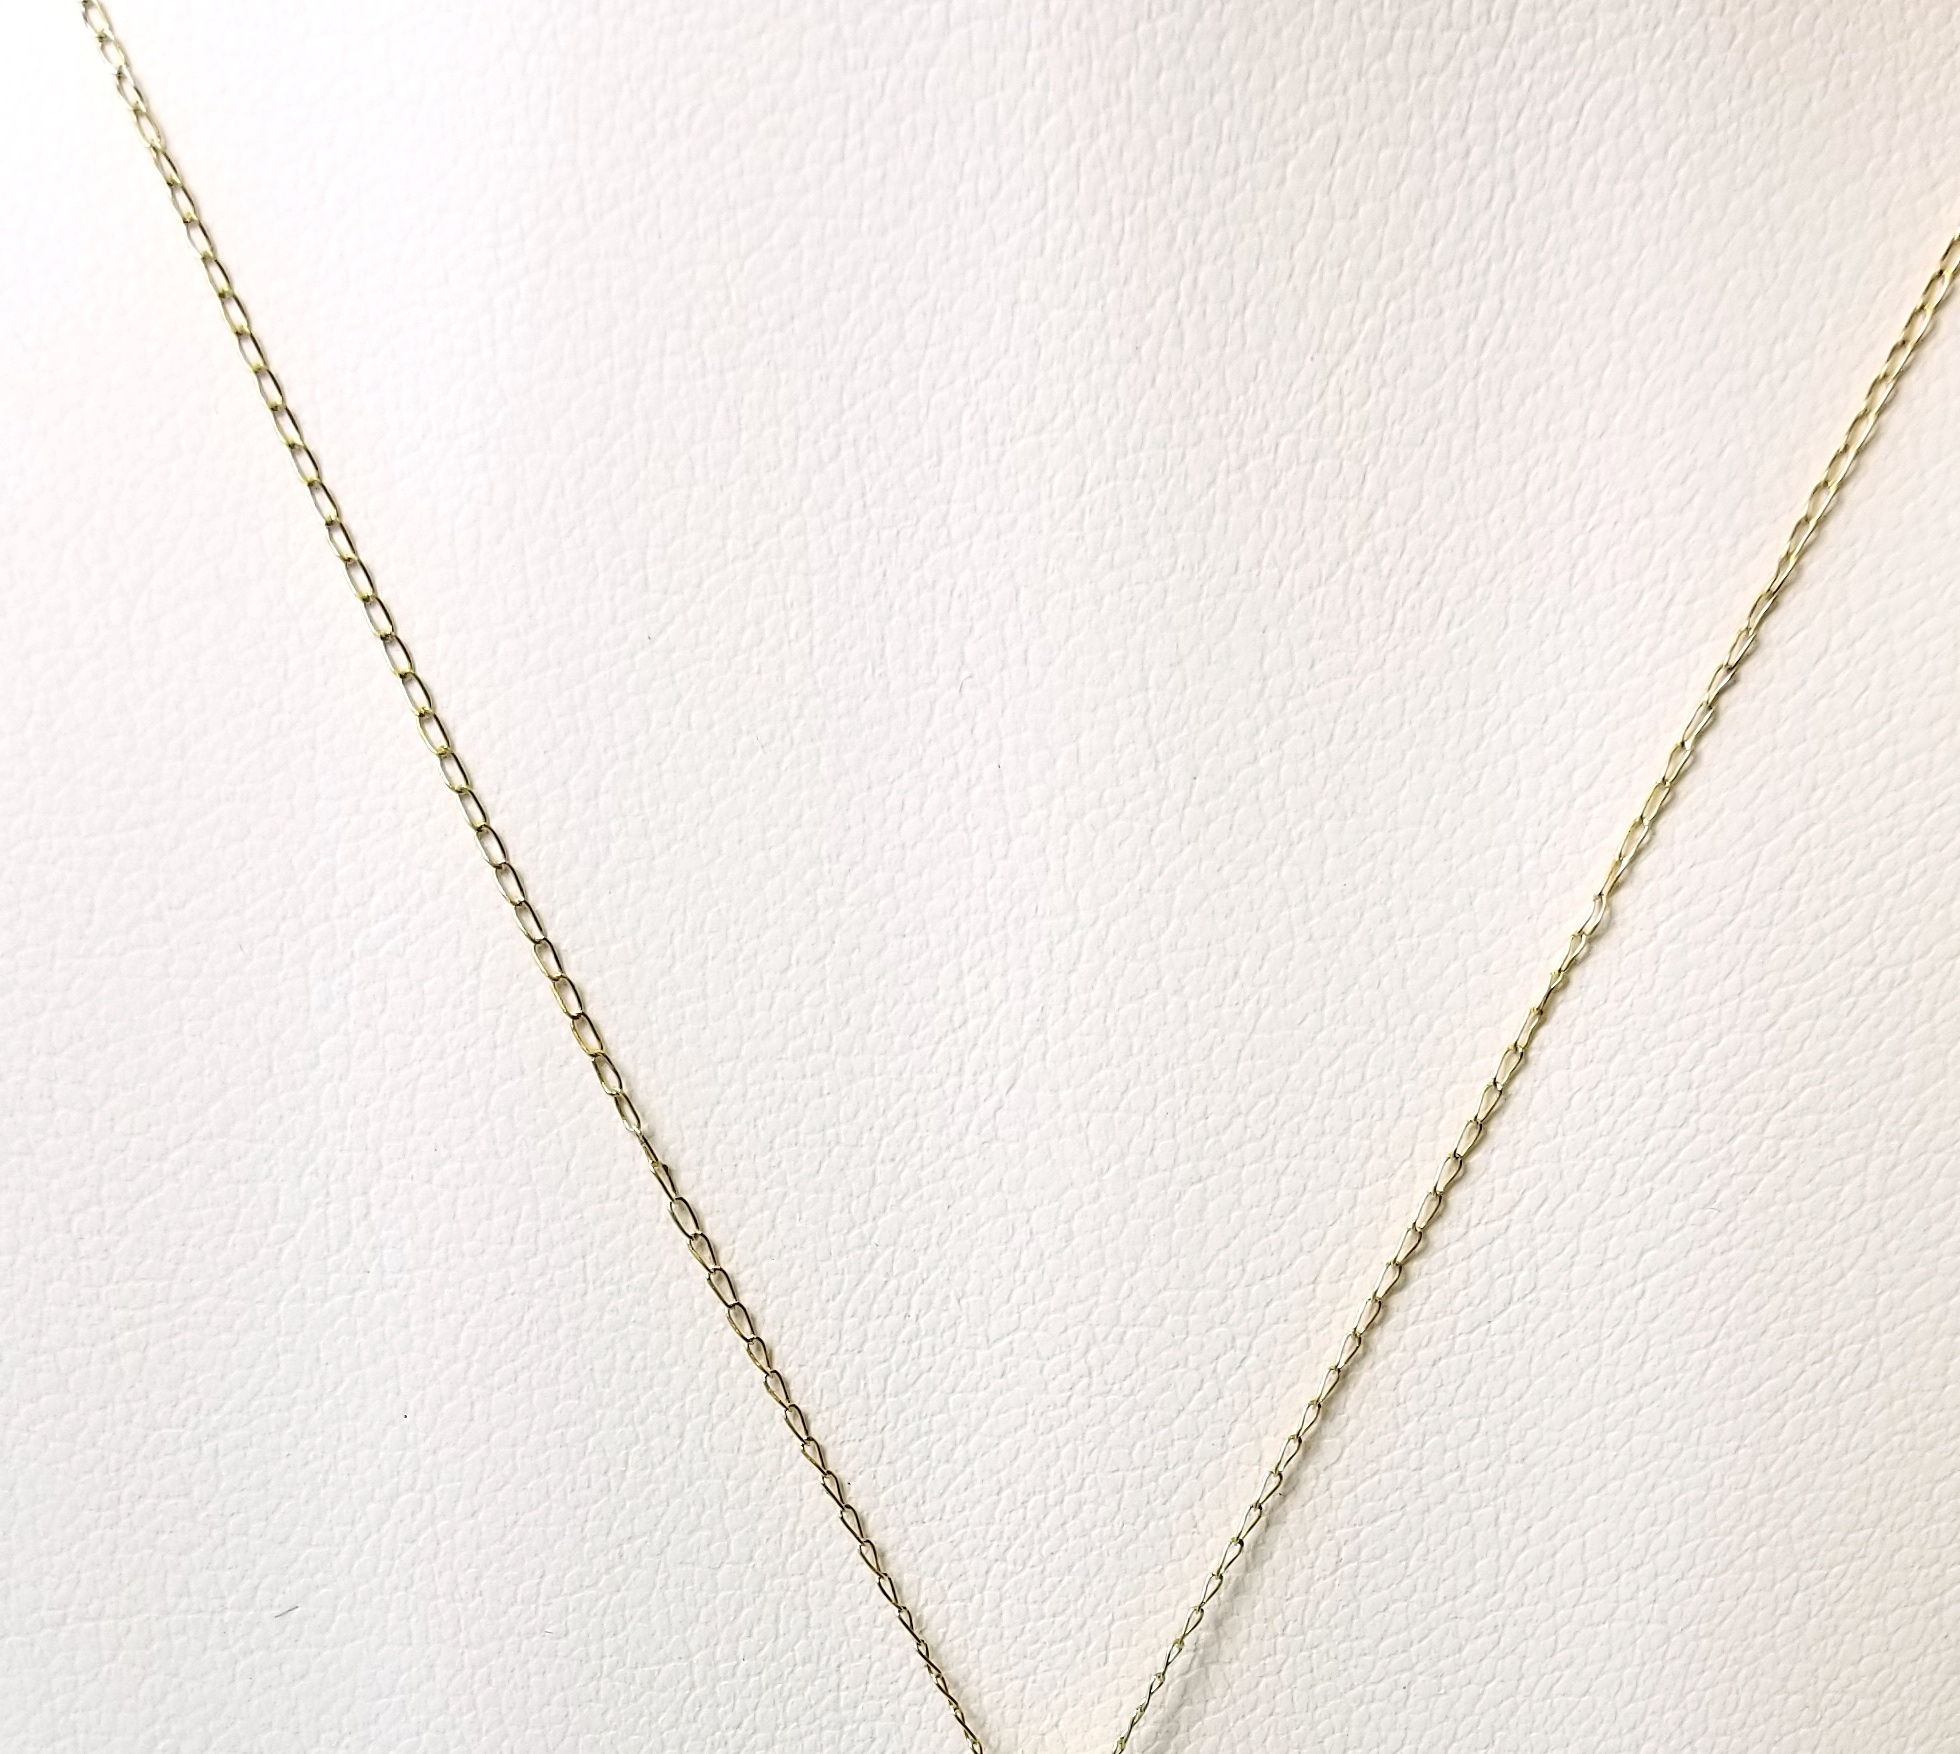 14K Yellow Gold .50g Link Chain 18.5